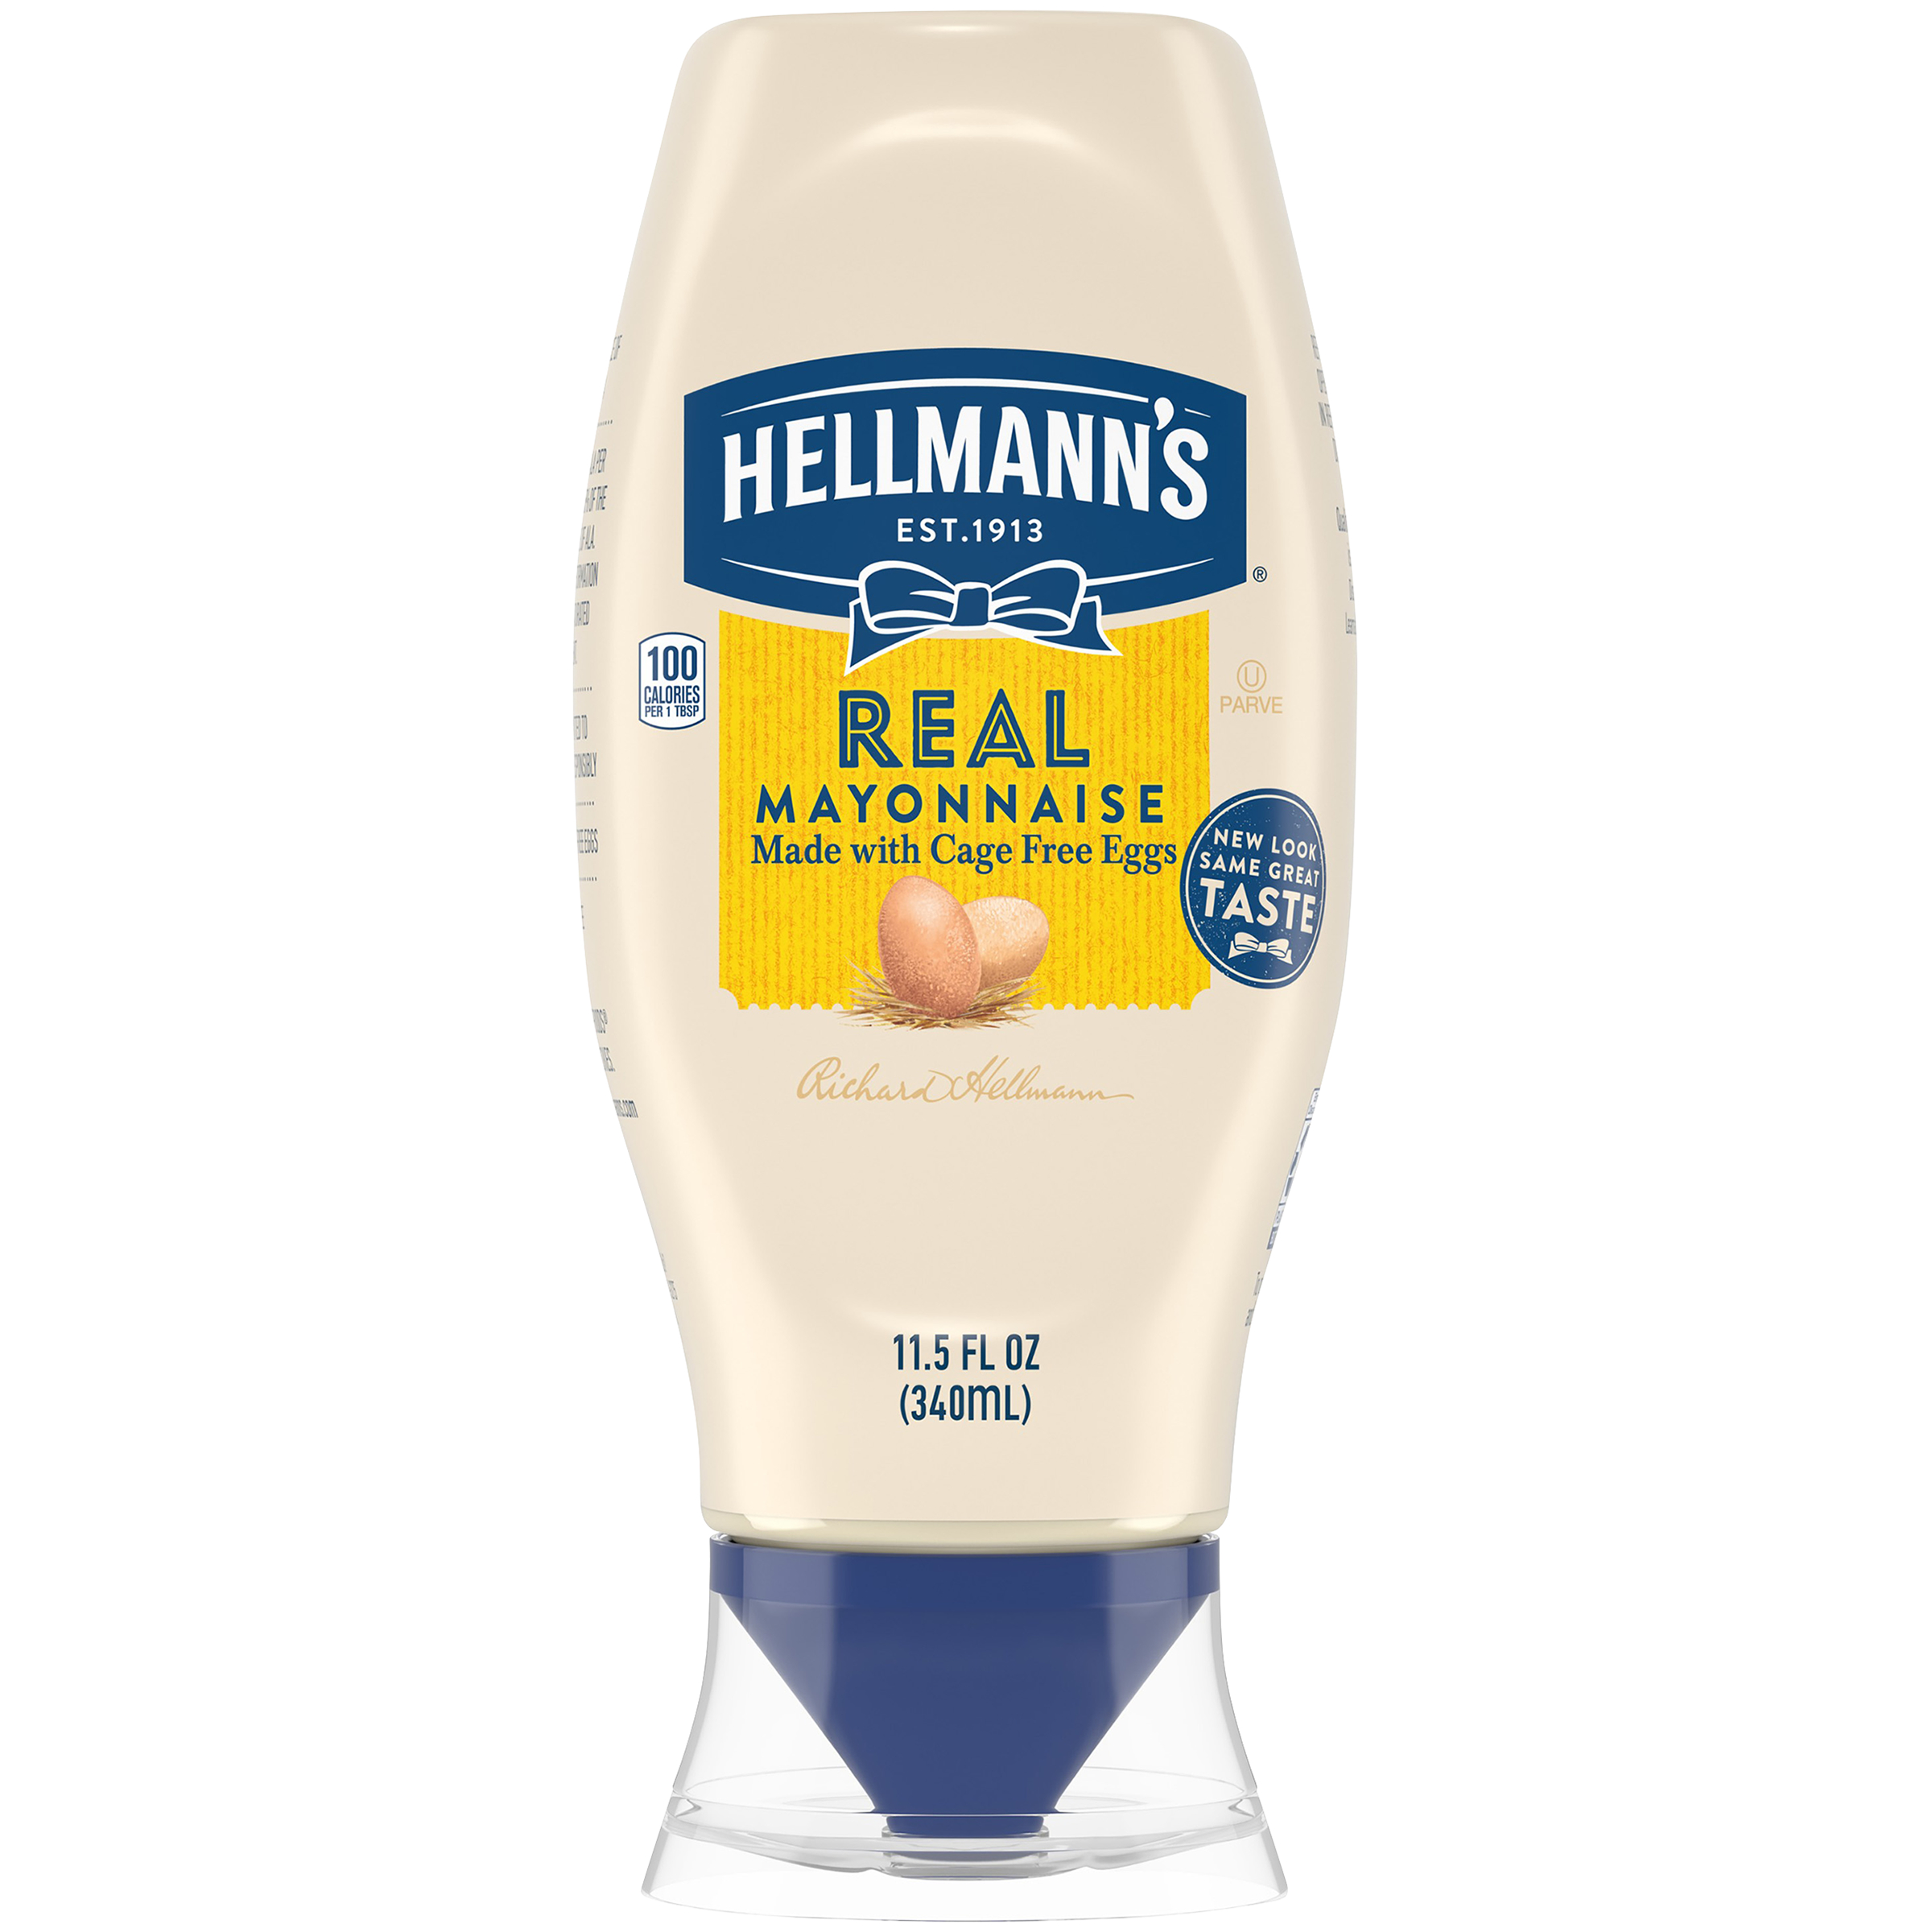 Hellmann's Real Mayonnaise Food Product Image